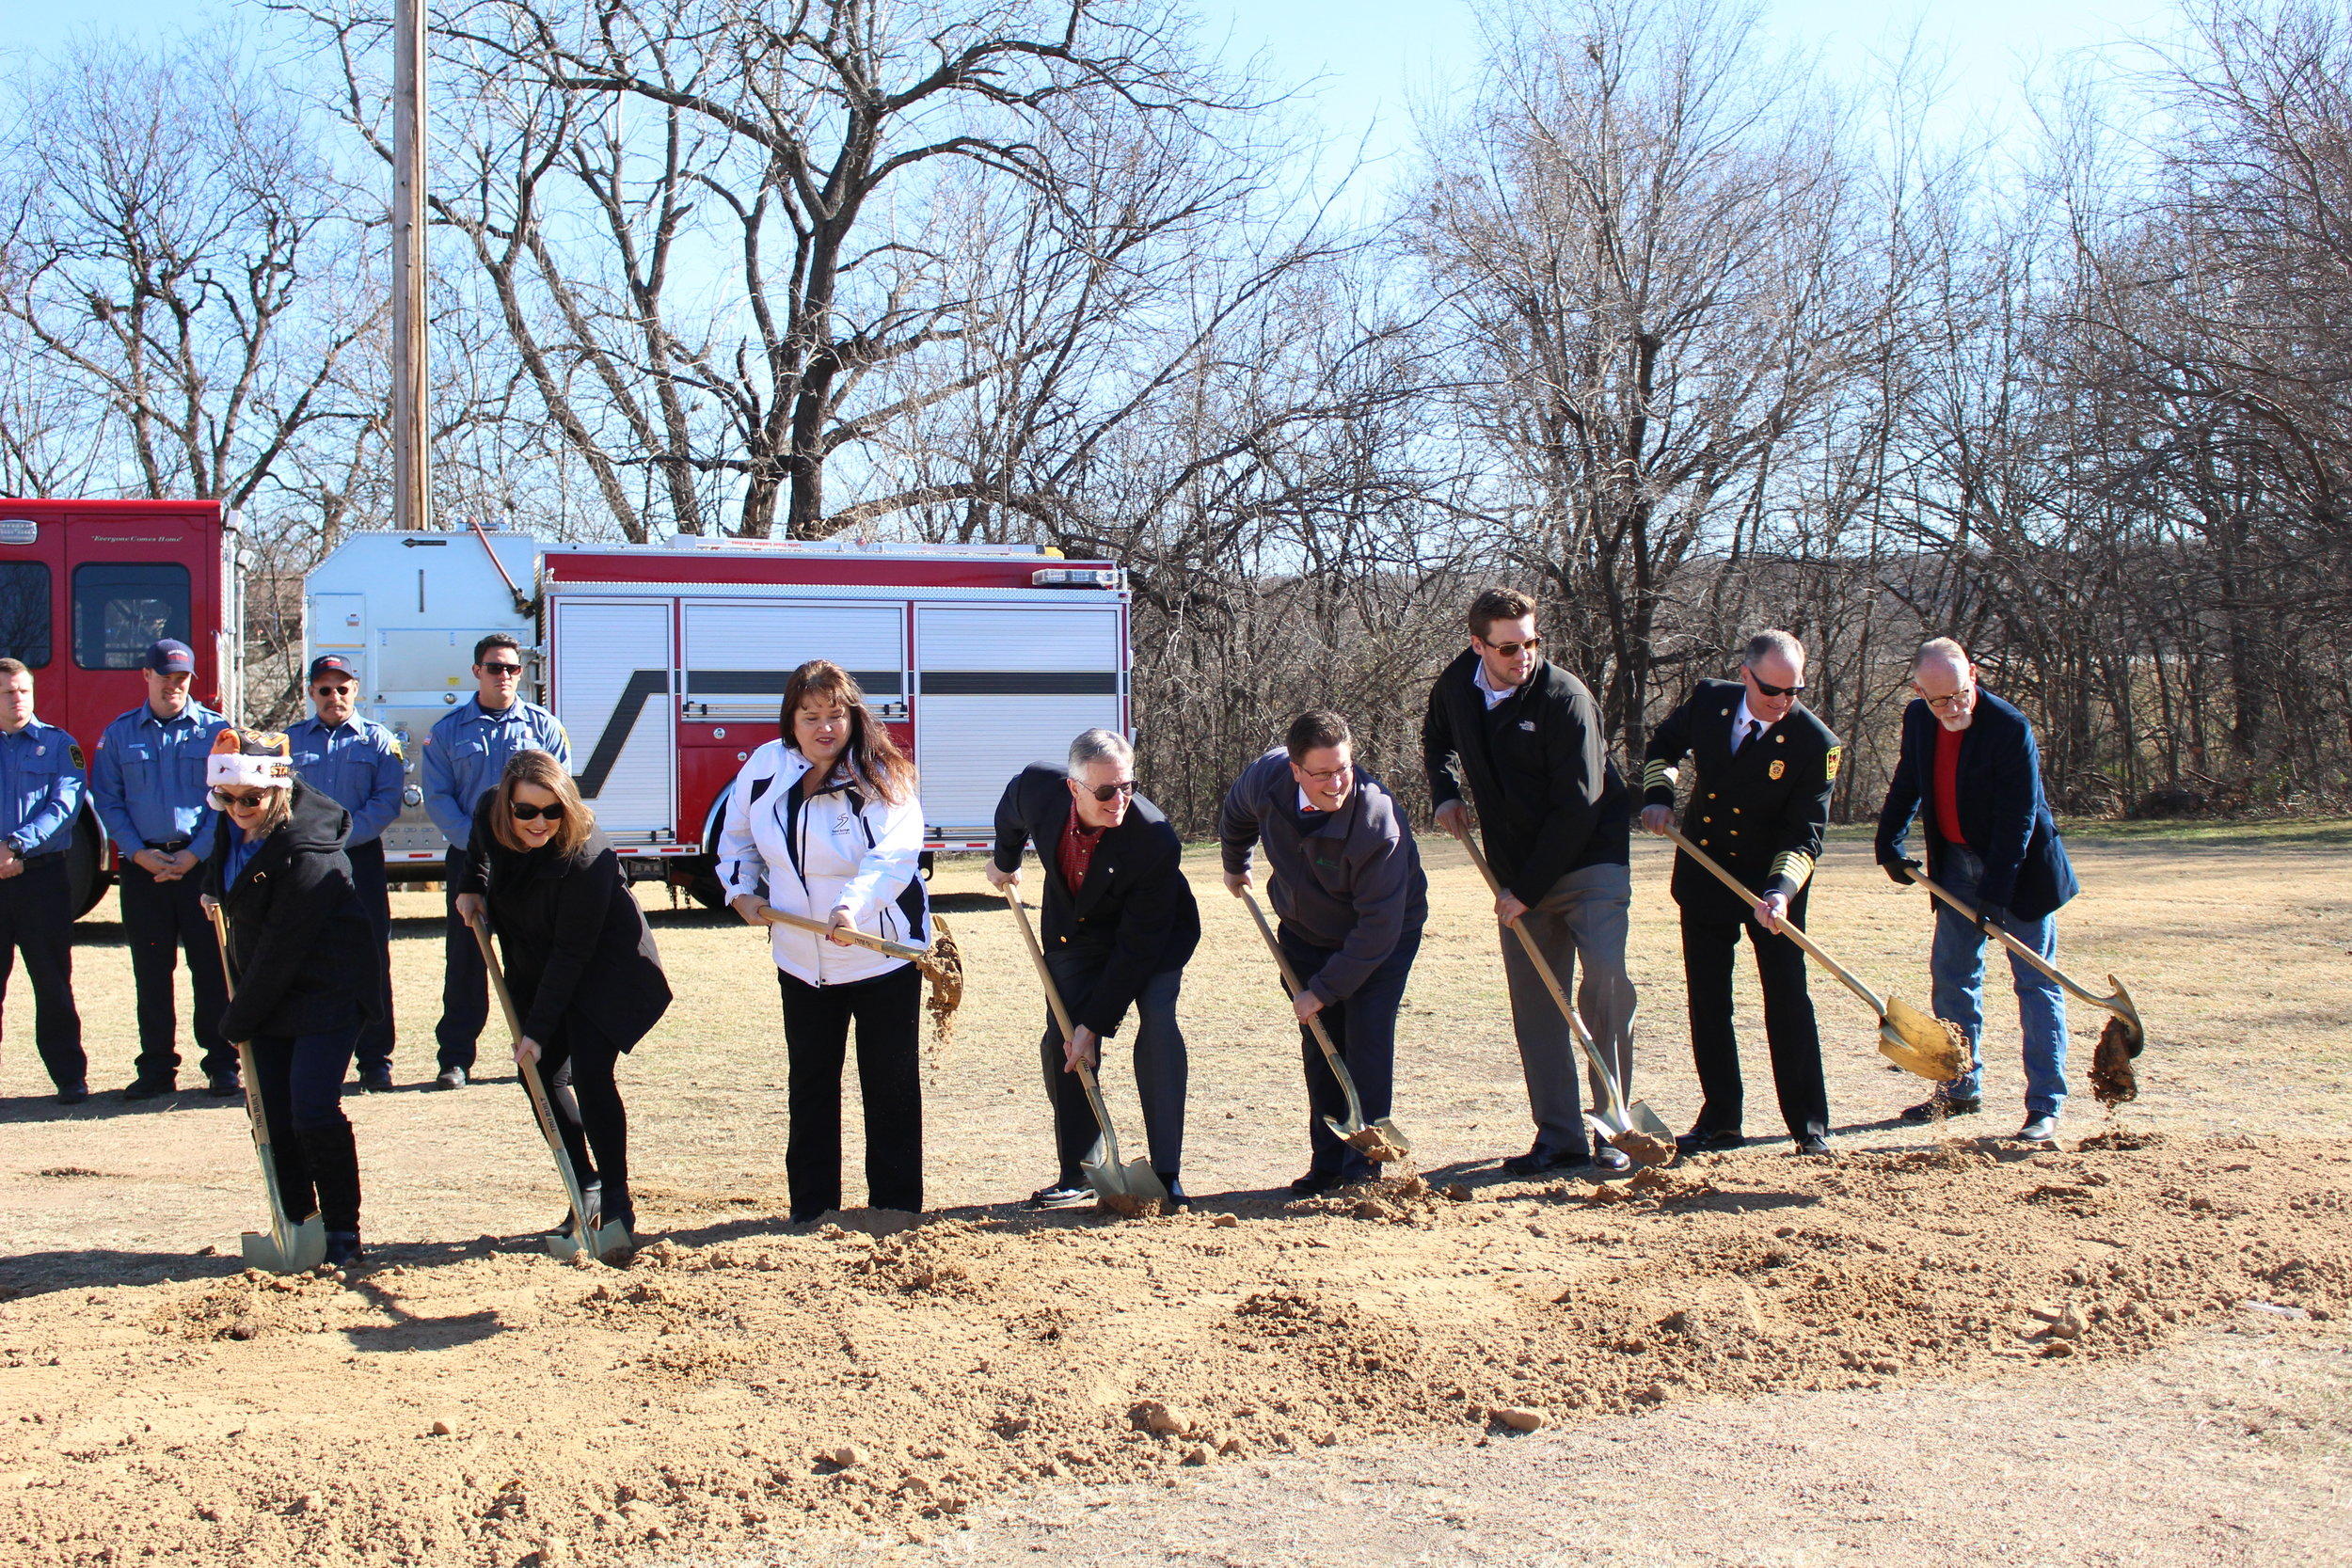 Members of the Sand Springs City Council, City Manager Elizabeth Gray, and Fire Chief Mike Wood turn dirt at the Fire Station No. 2 Ground-Breaking Ceremony.